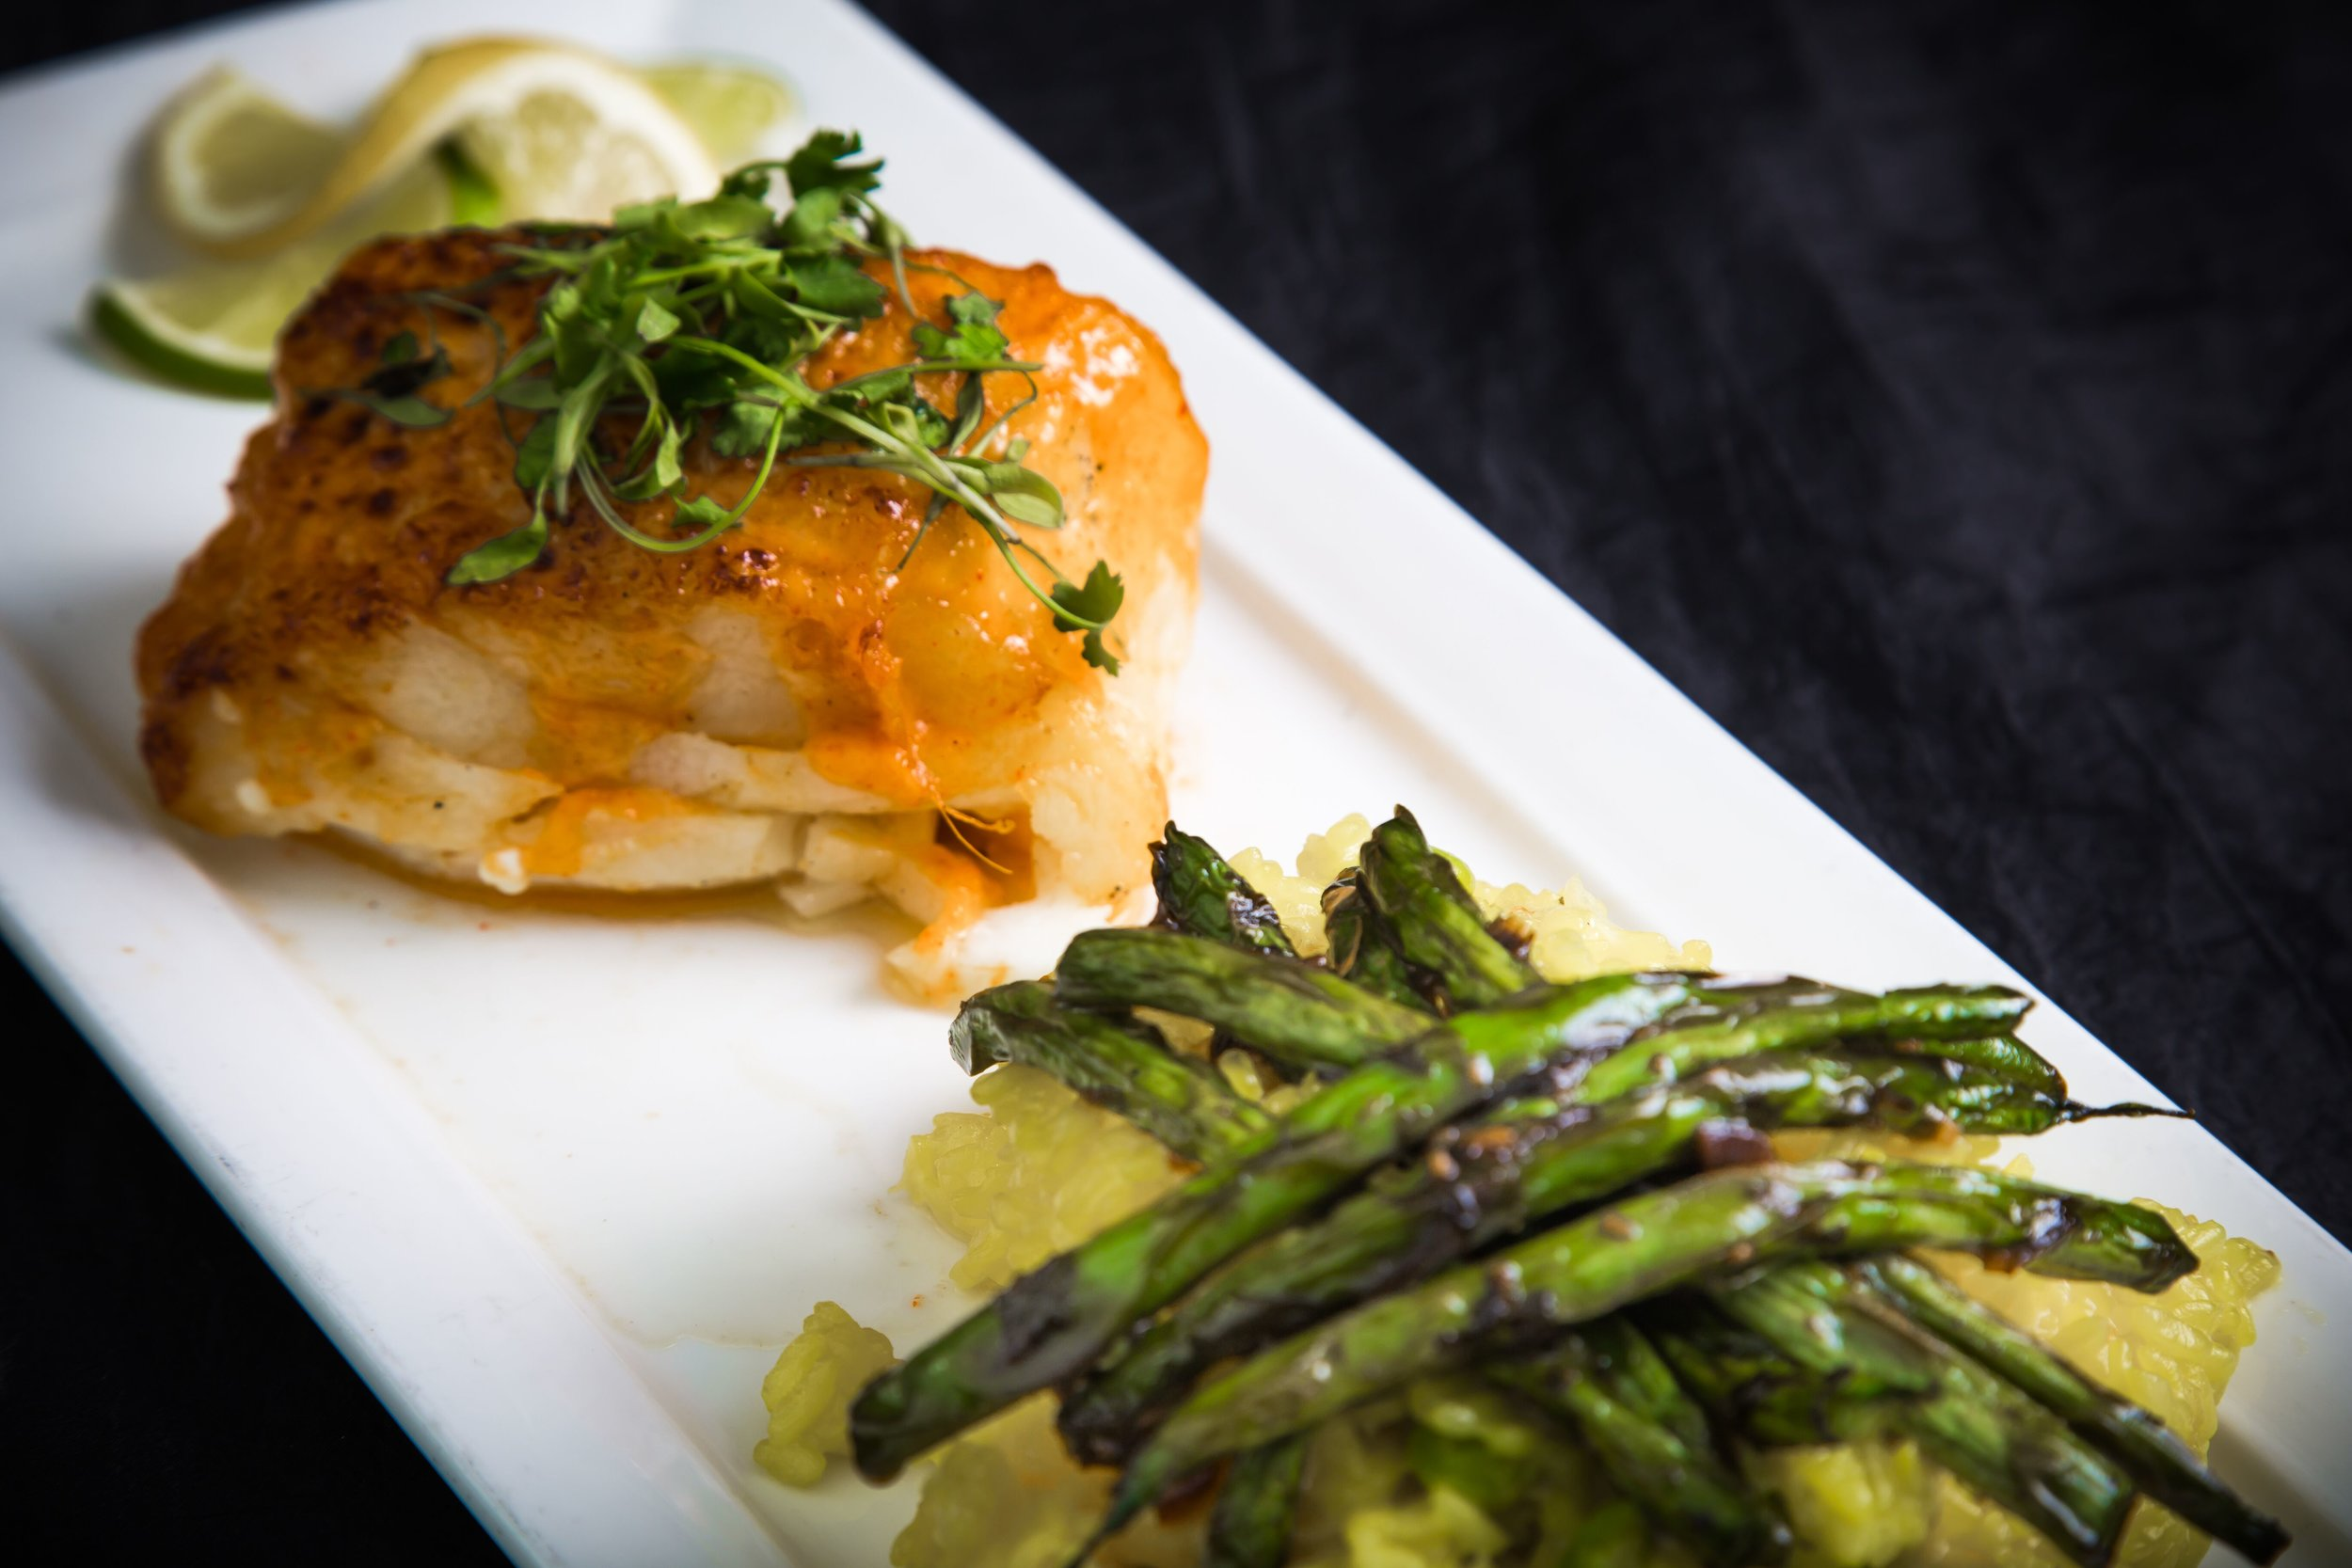 Asparagus and crab cake